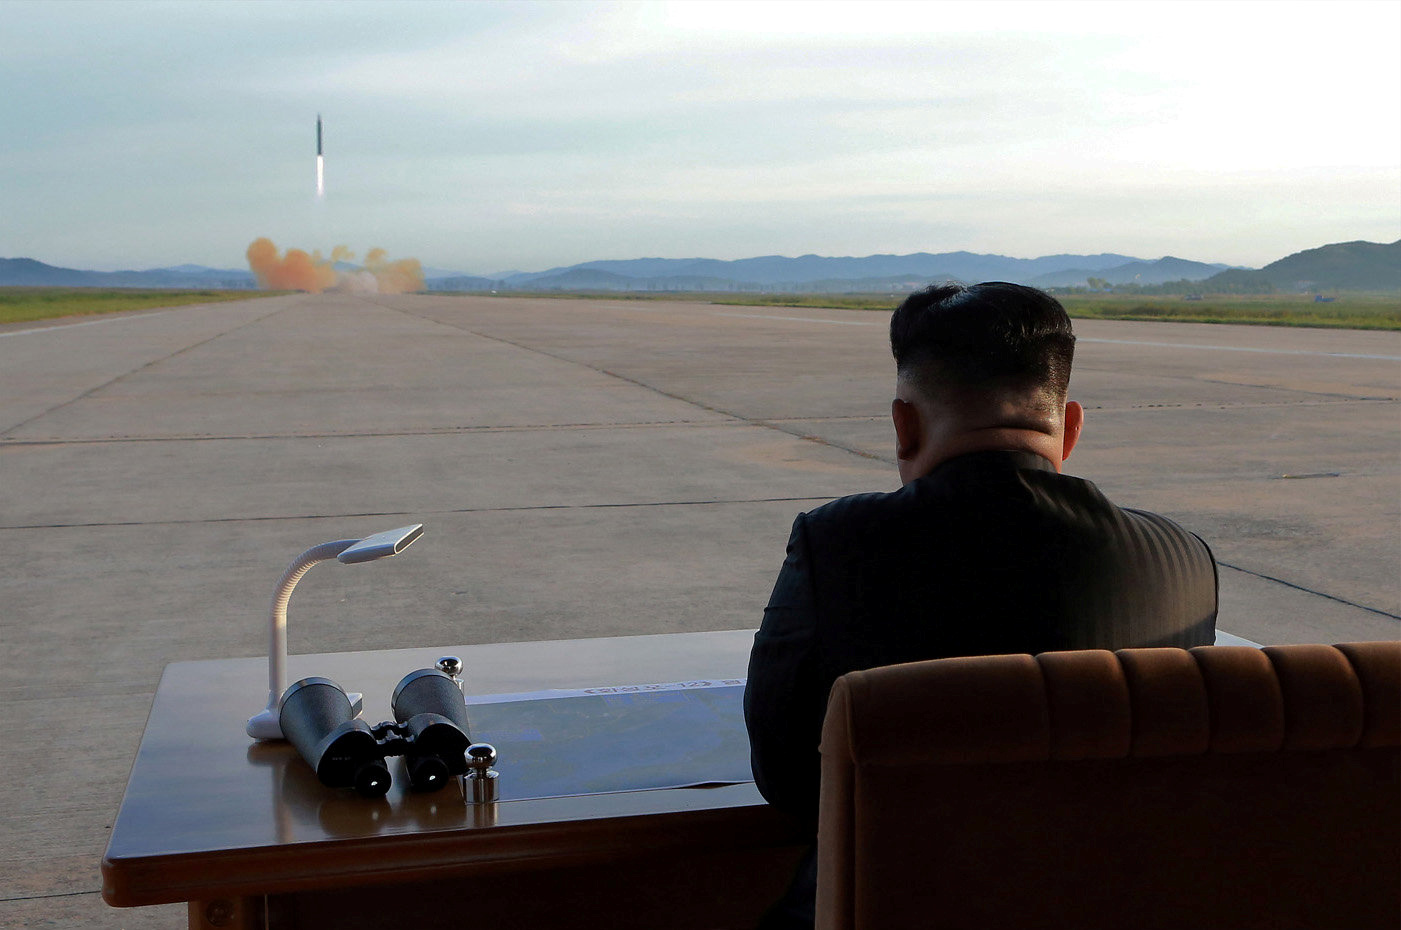 North Korean leader Kim Jong-un watches the launch of a Hwasong-12 missile in this undated photo released by North Korea's Korean Central News Agency (KCNA) on September 16, 2017.  (Image: Reuters)